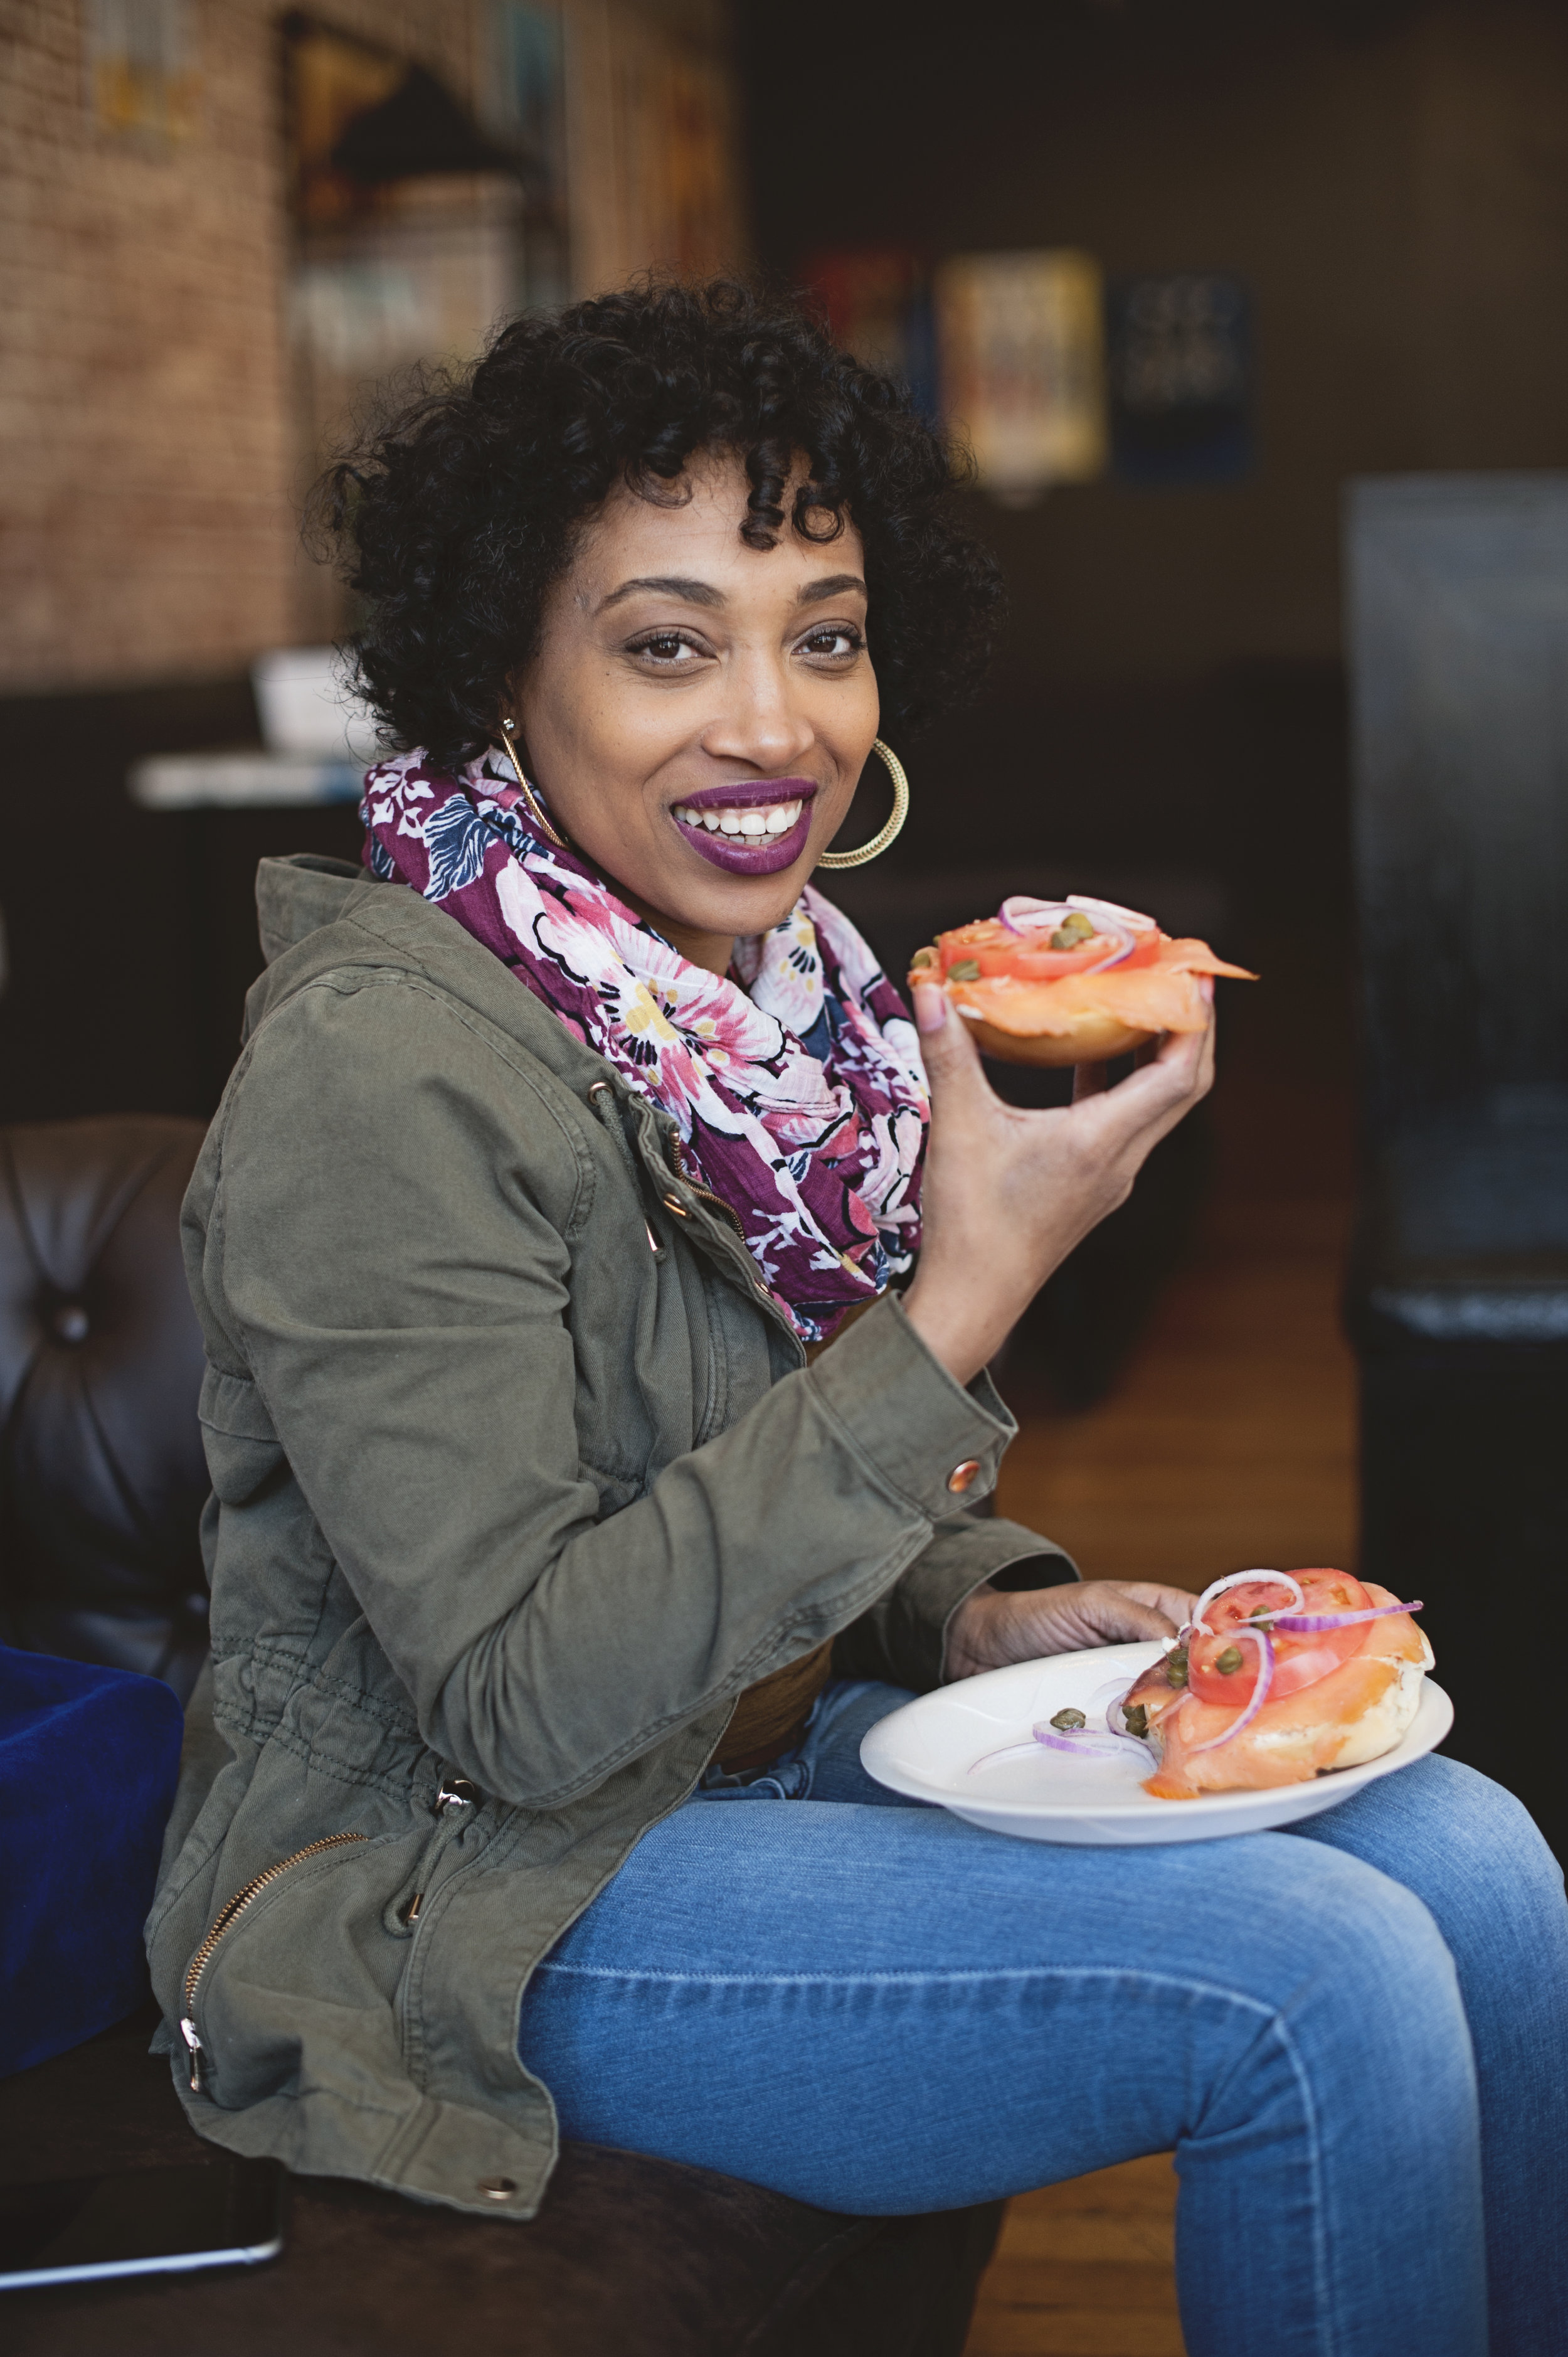 Andrea Fenise Memphis Fashion Blogger and Memphis Food Blogger shares South Main Market Feature